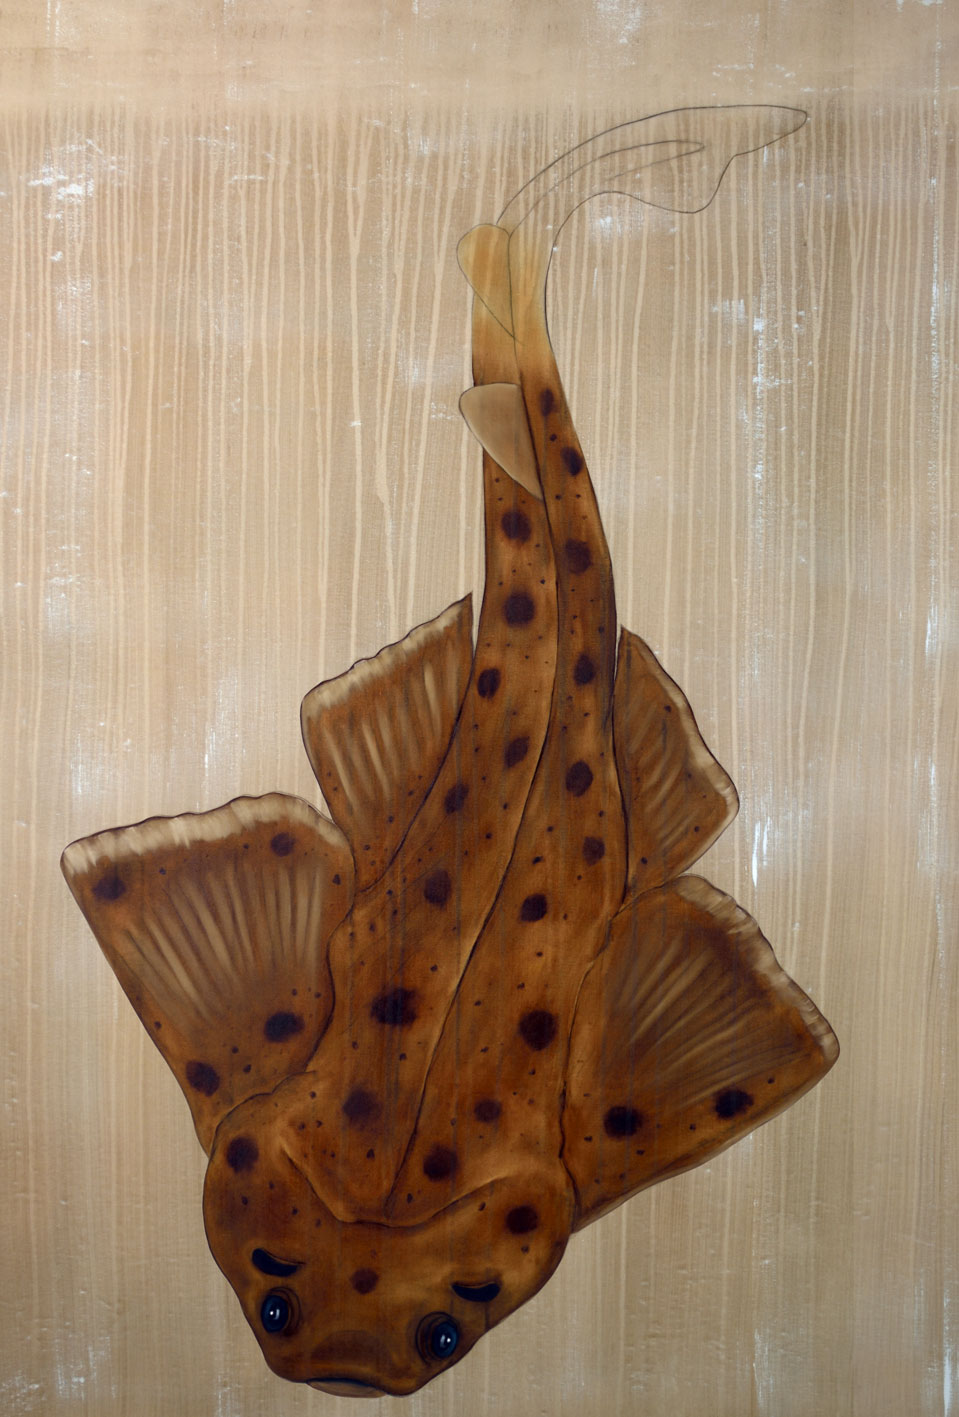 SQUATINA squatina angel-shark-angelshark-threatened-endangered-extinction Thierry Bisch painter animals painting art decoration hotel design interior luxury nature biodiversity conservation